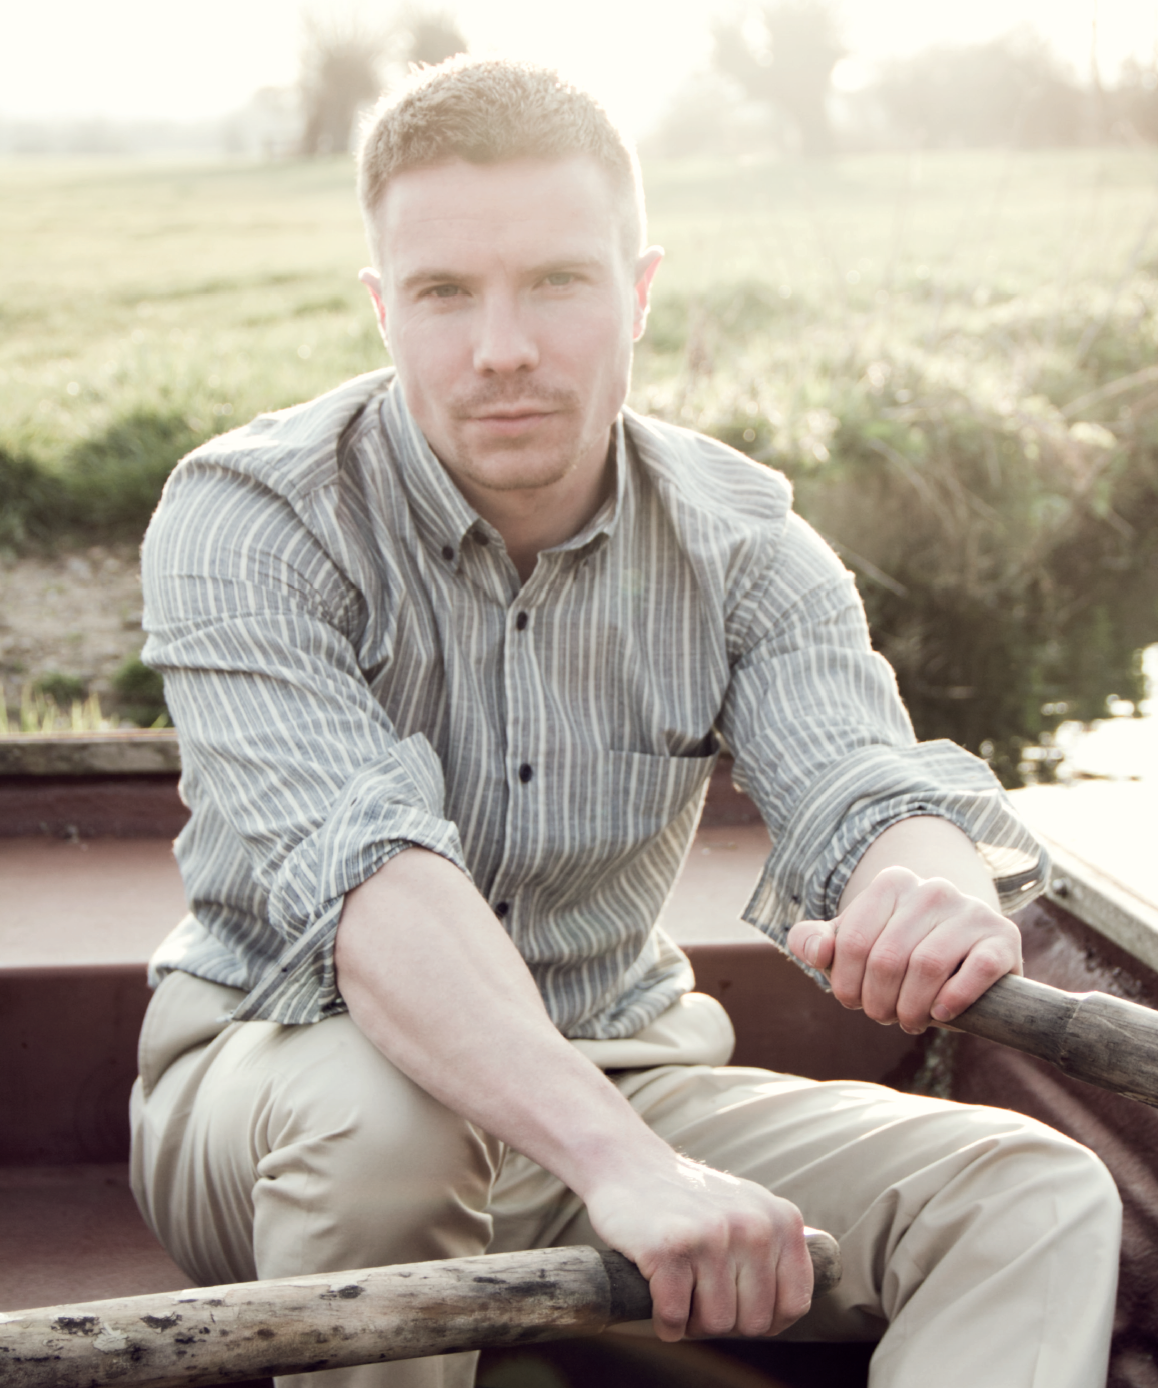 Joe Dempsie, skins, game of thrones, got, gendry, actor